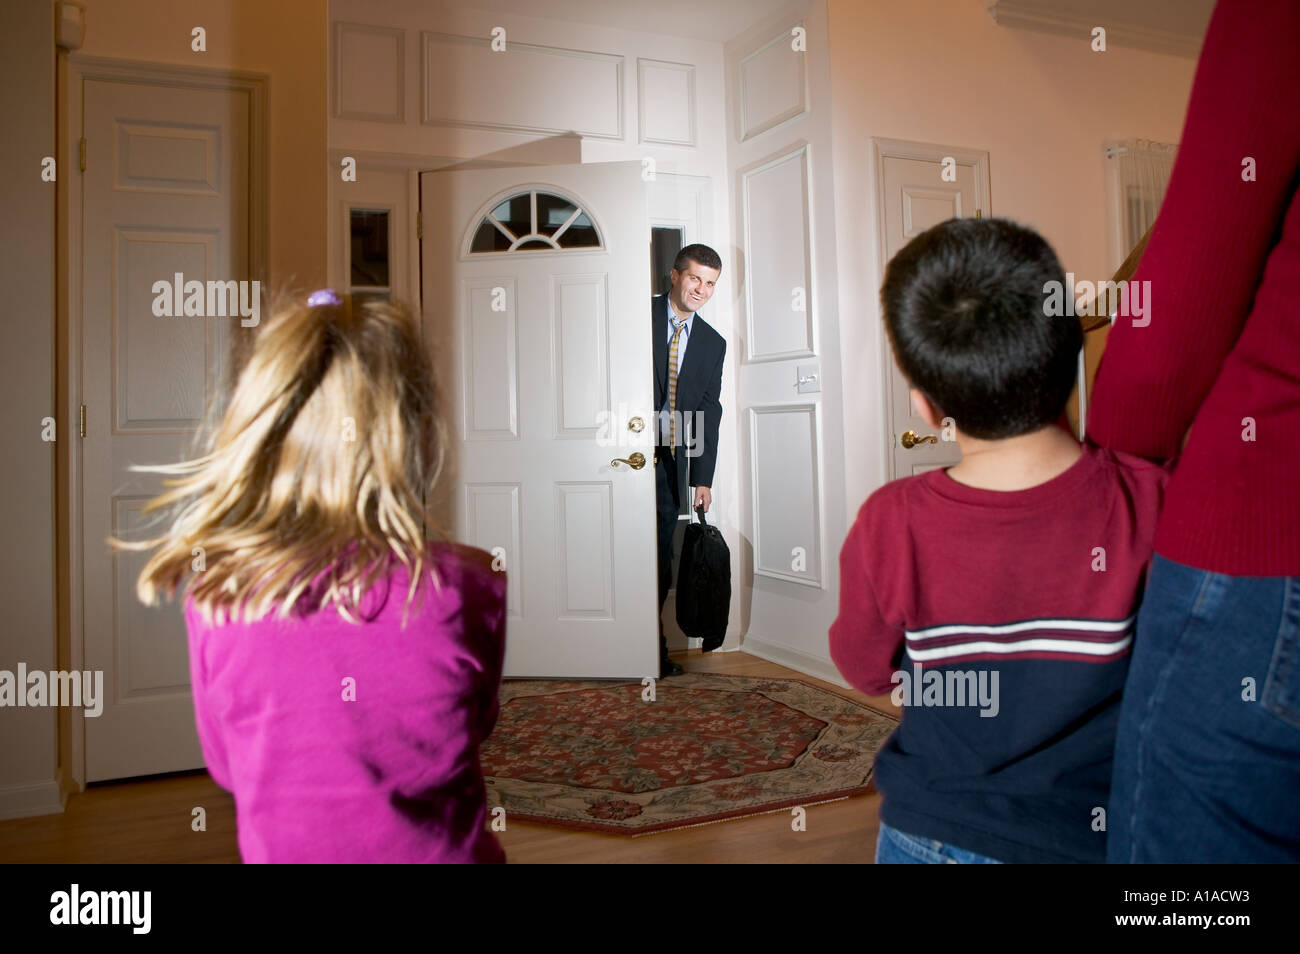 Family greeting businessman as he arrives home - Stock Image